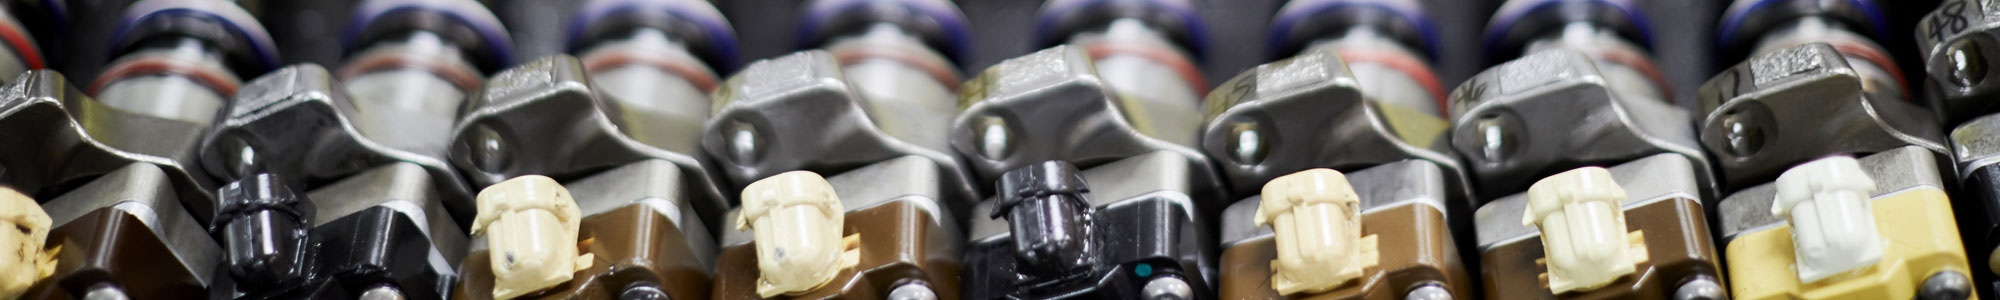 A row of remanufactured Delphi Technologies diesel injectors